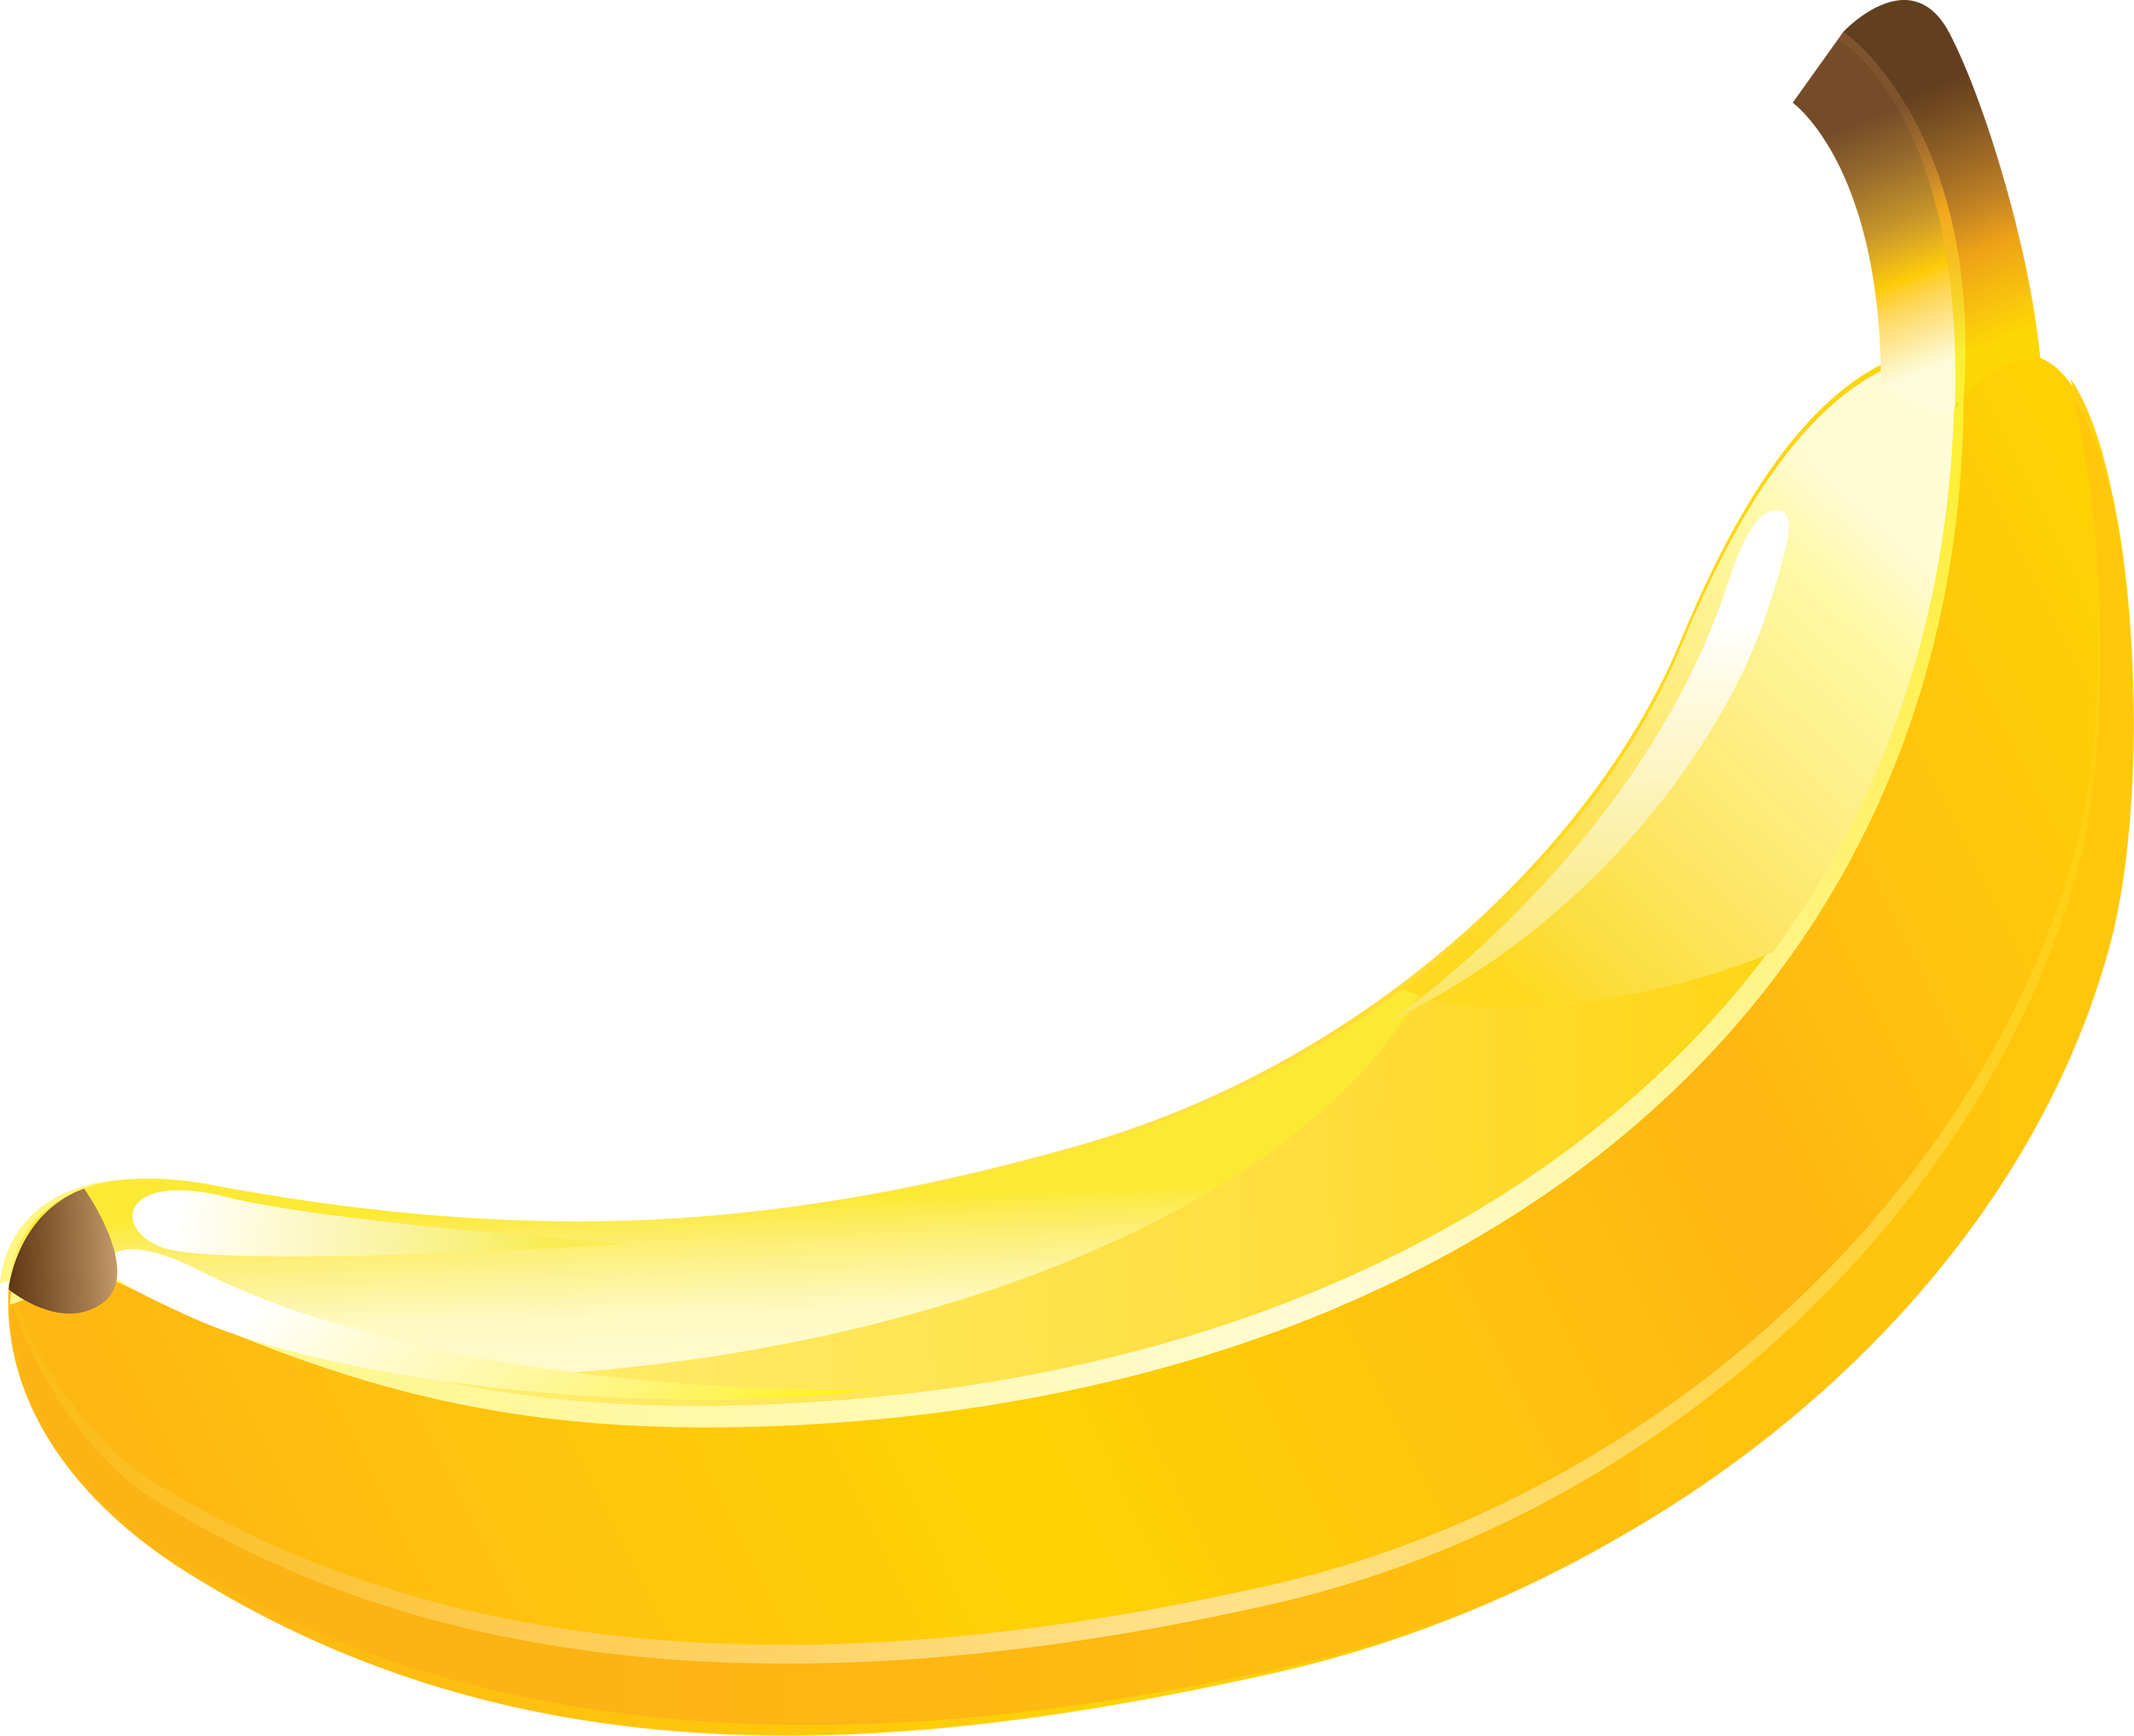 Get Banana Png Pictures image #27762